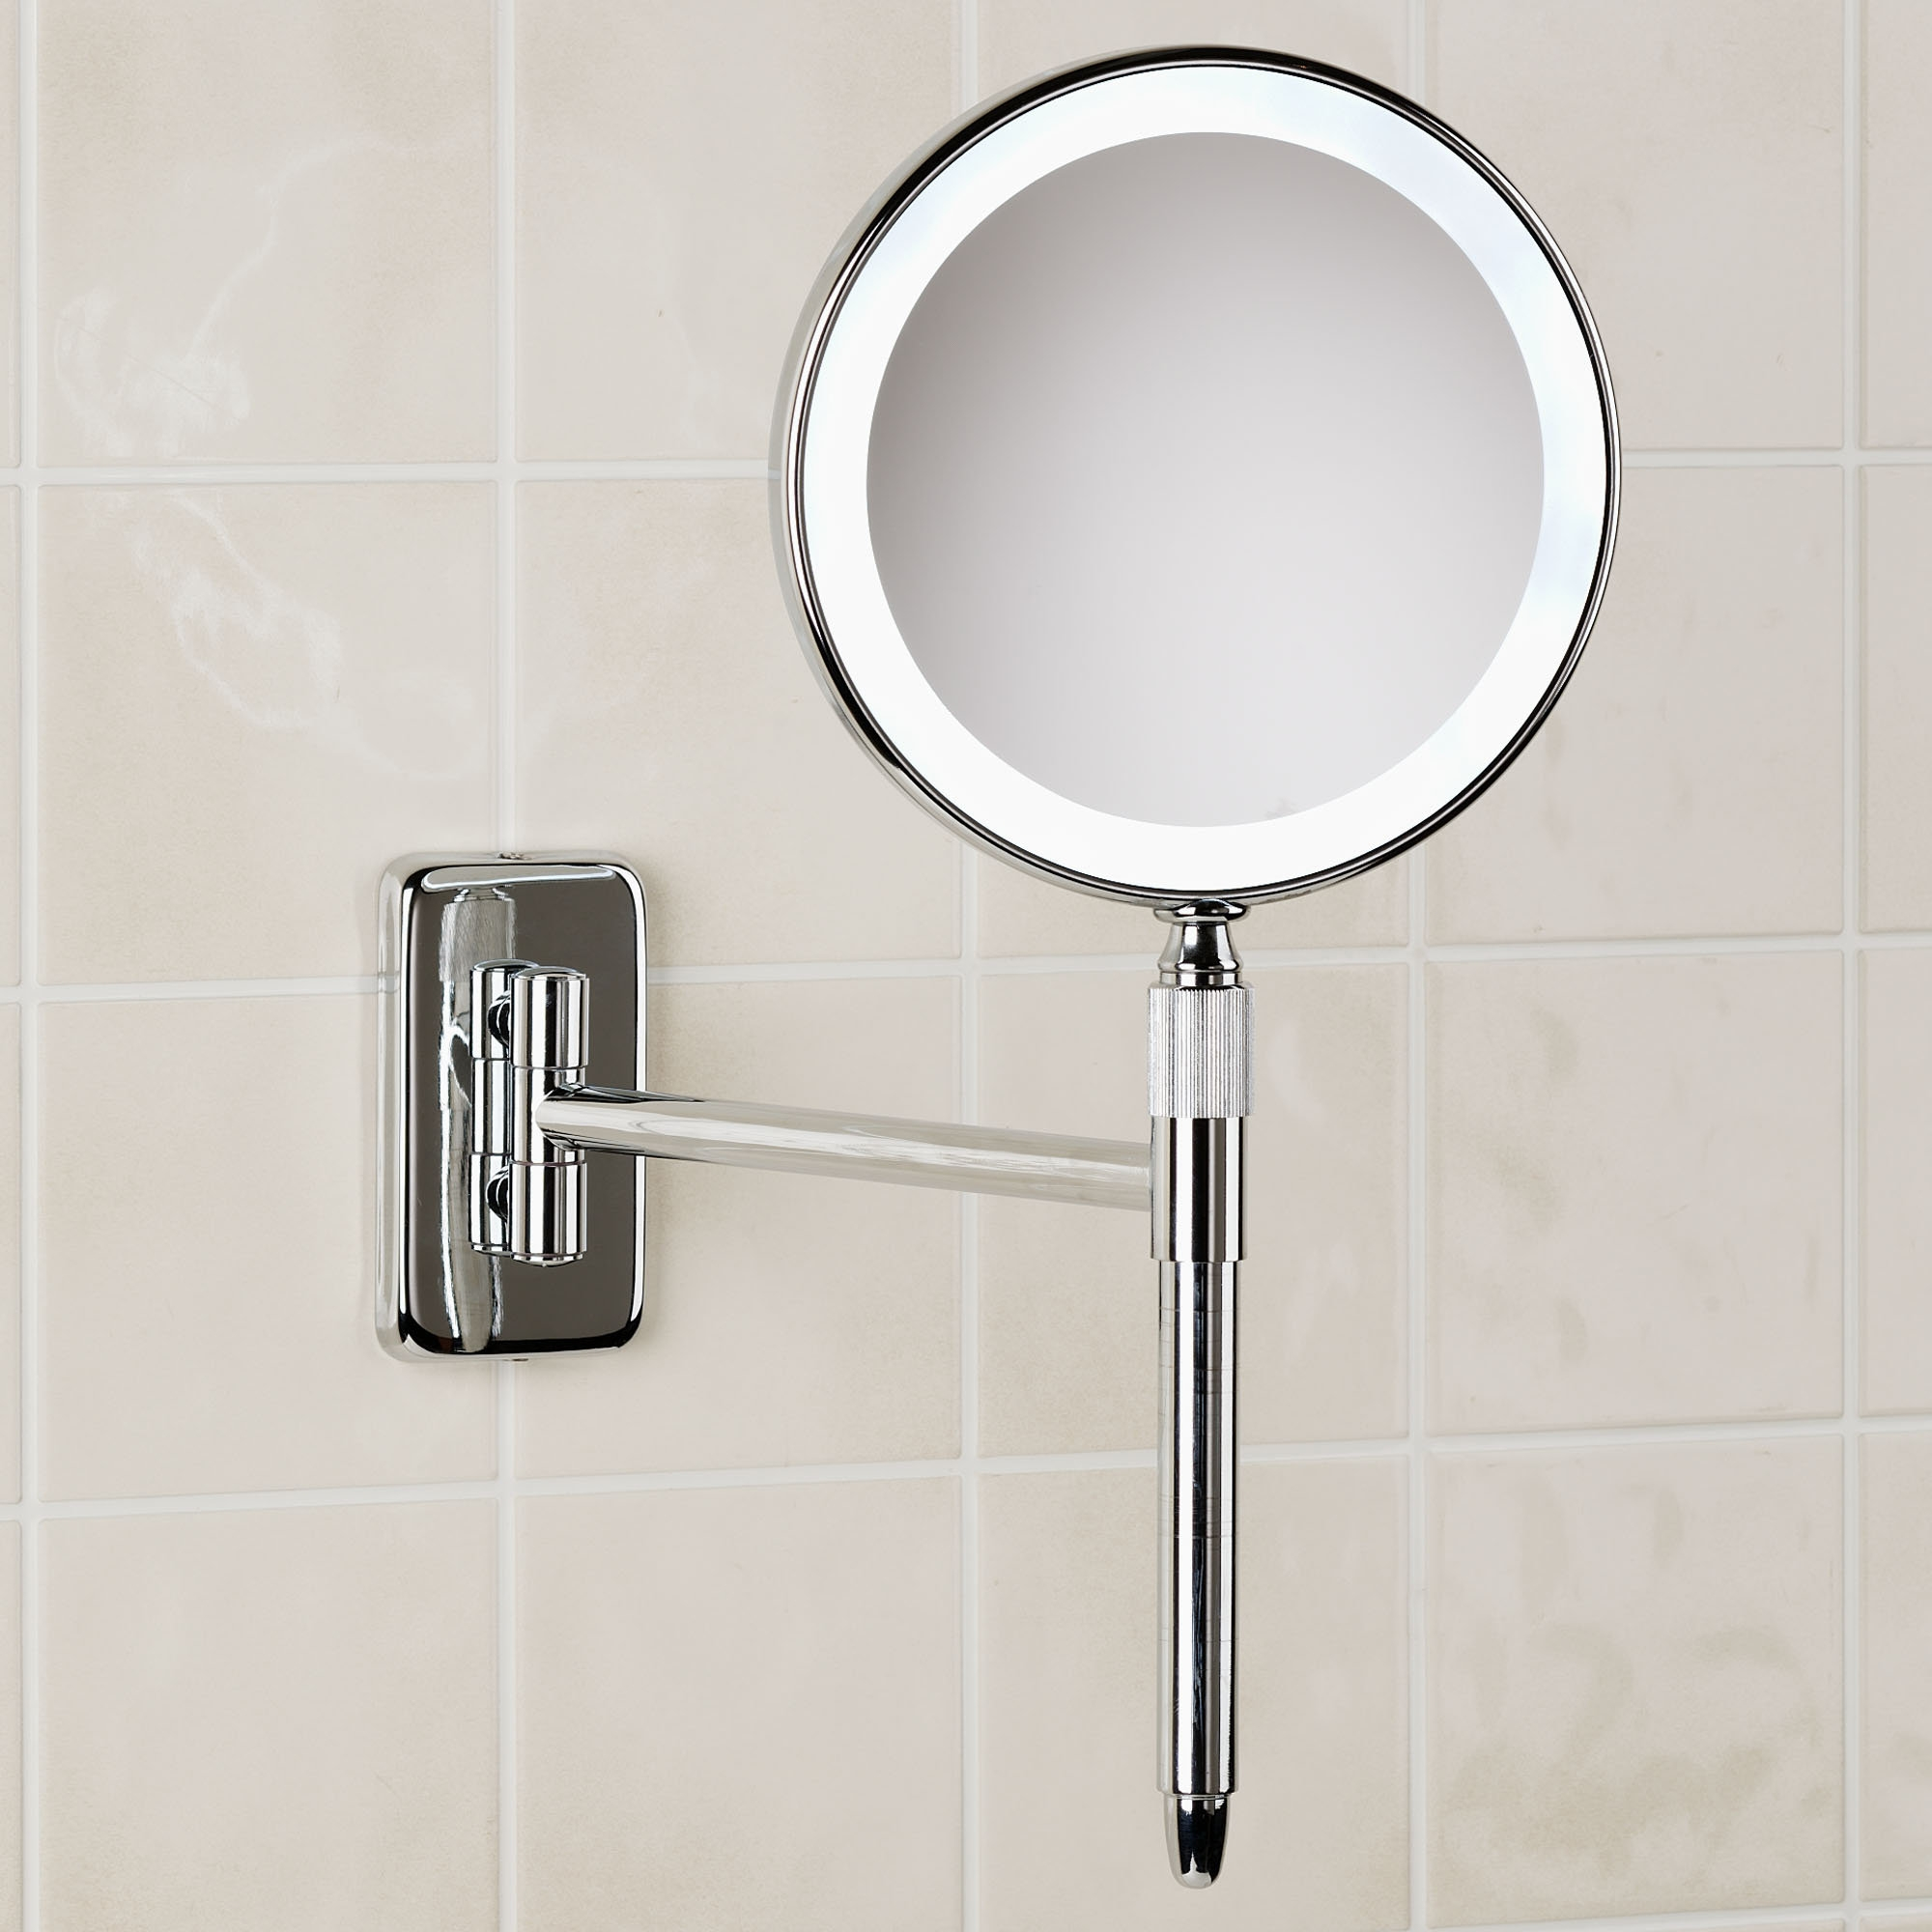 Bathroom Makeup Mirror Wall Mountbedroom make your home more beautiful with lighted vanity mirror